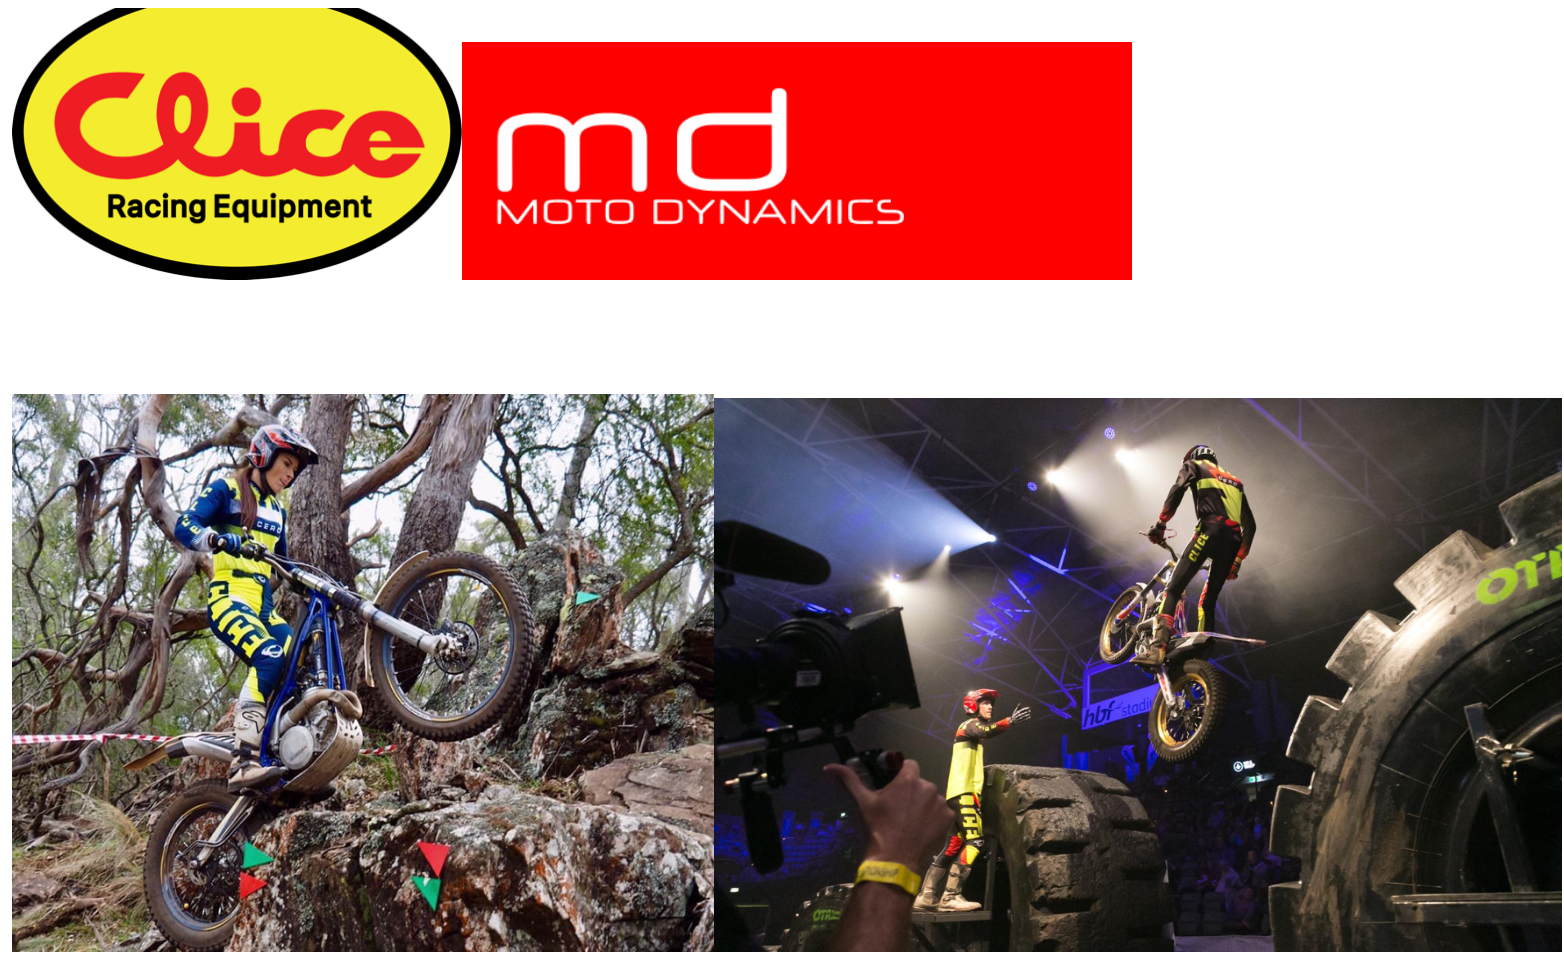 Moto Dynamics Pty Ltd becomes the Australian Clice Importers